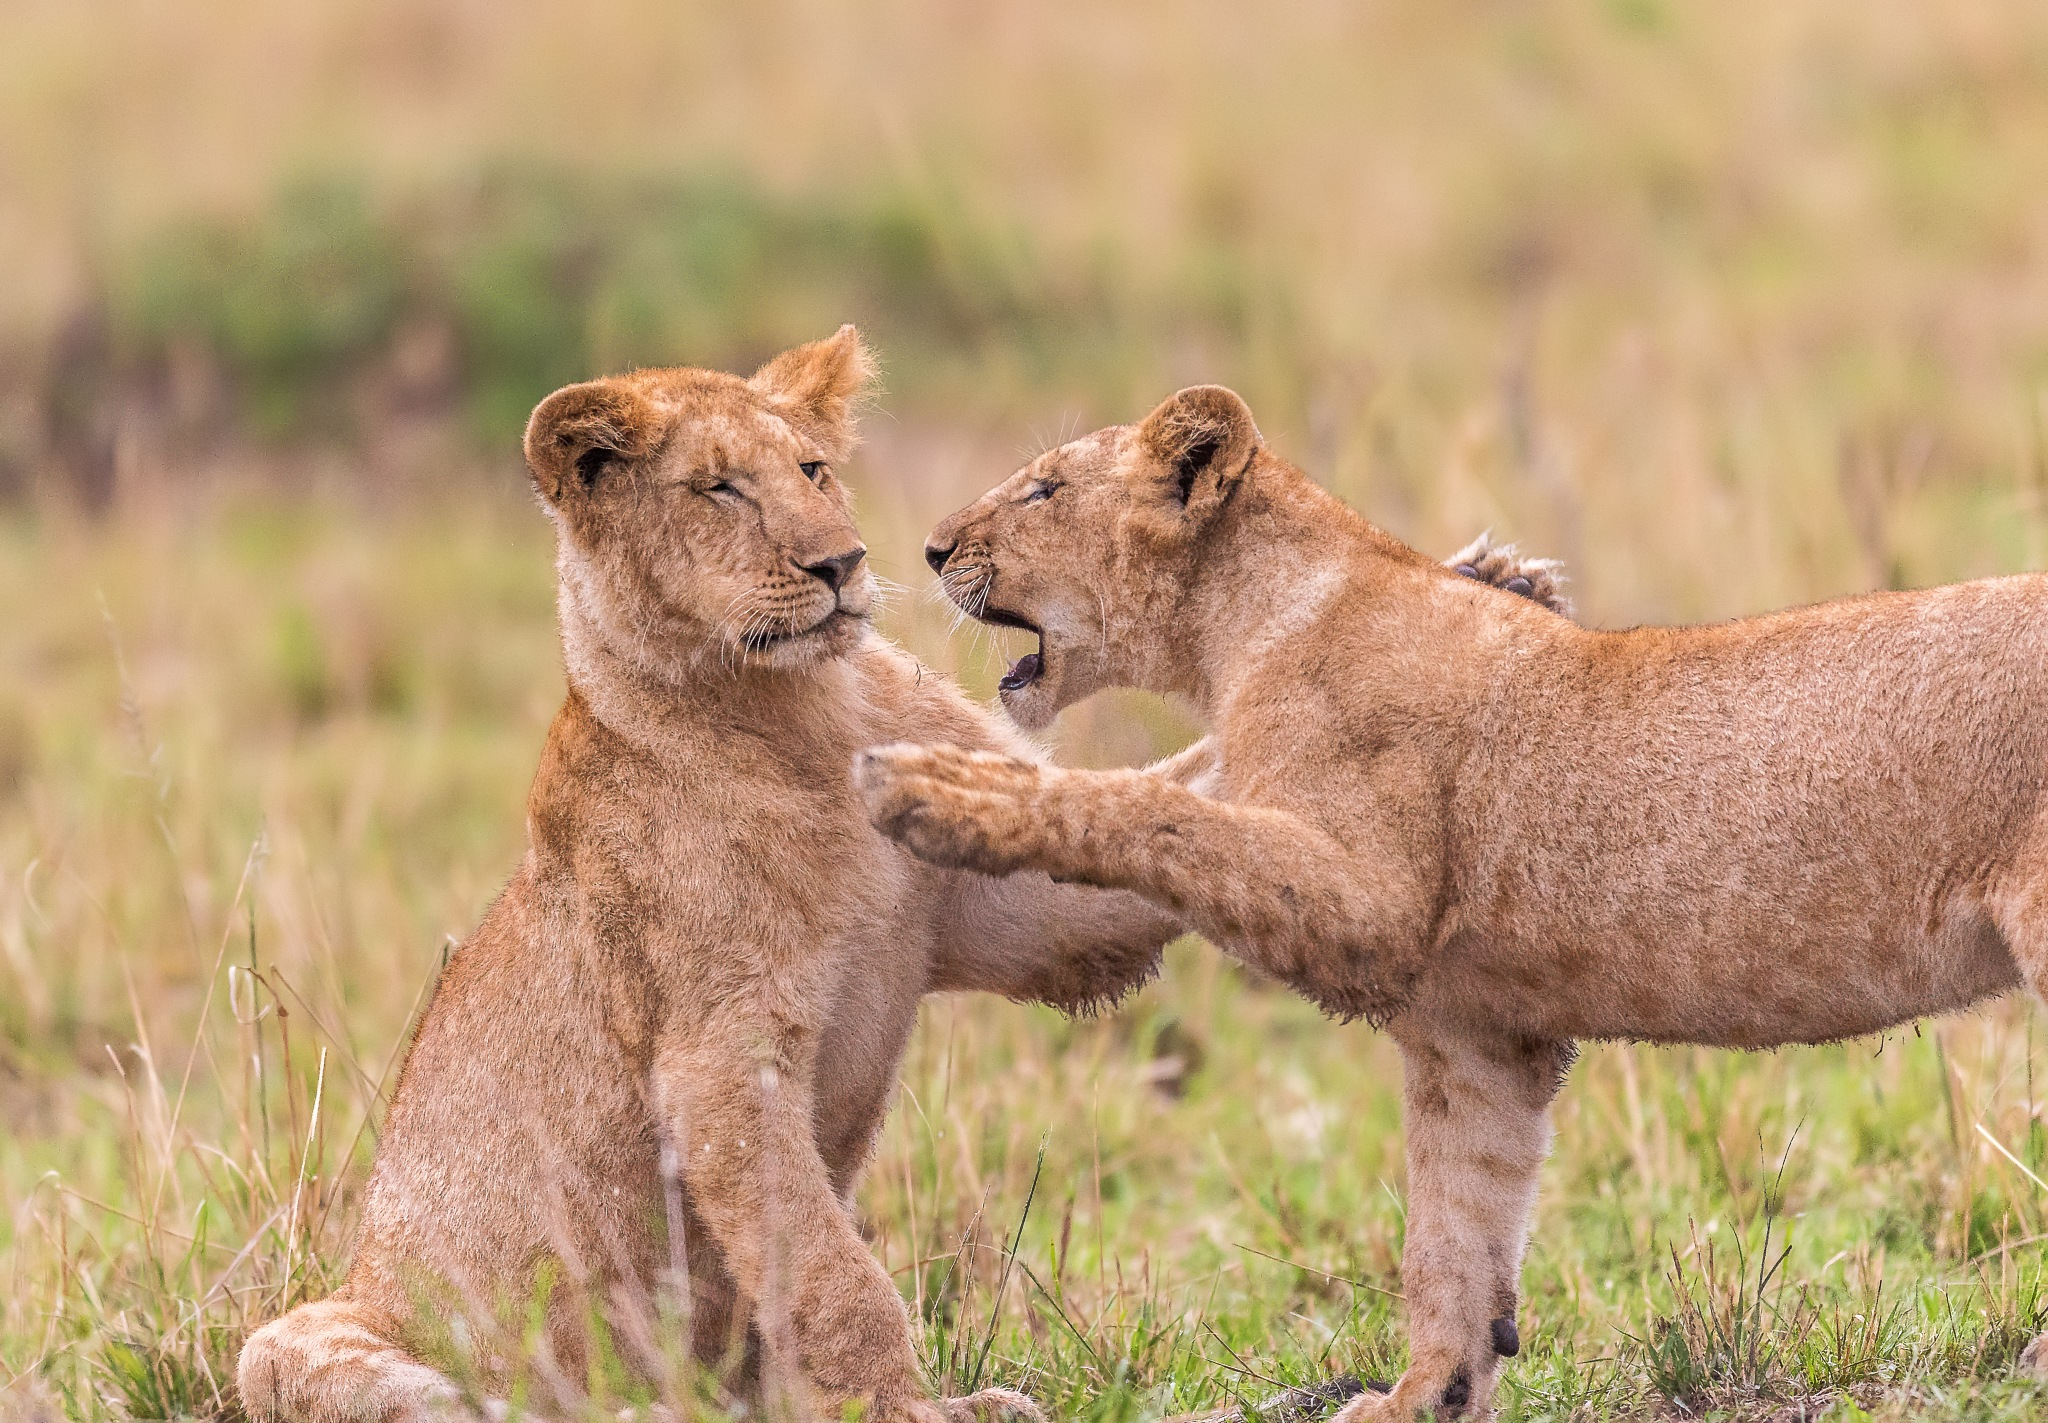 Friendly fight by DrSudhir Hasamnis